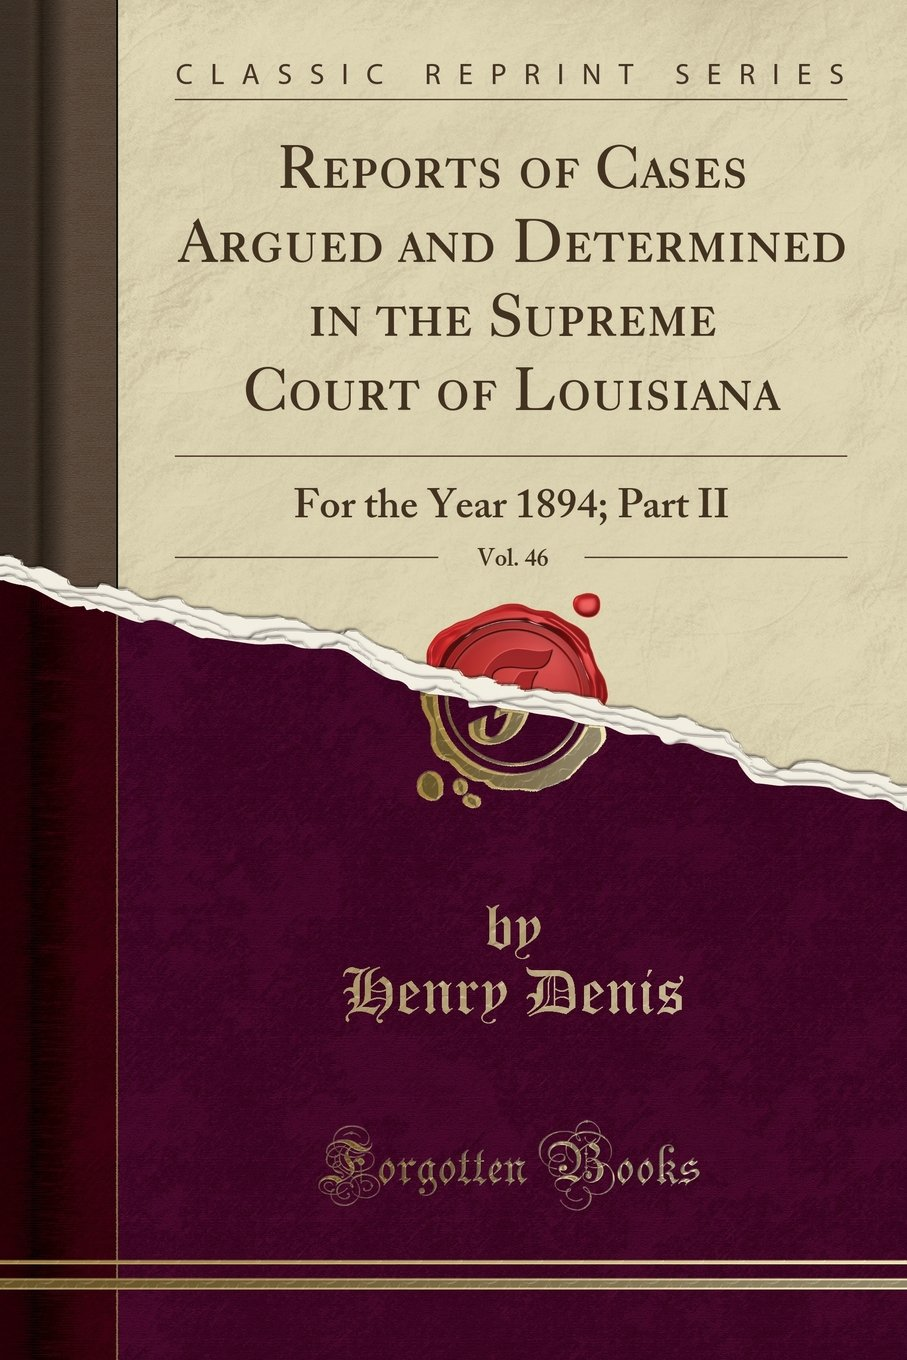 Read Online Reports of Cases Argued and Determined in the Supreme Court of Louisiana, Vol. 46: For the Year 1894; Part II (Classic Reprint) ebook